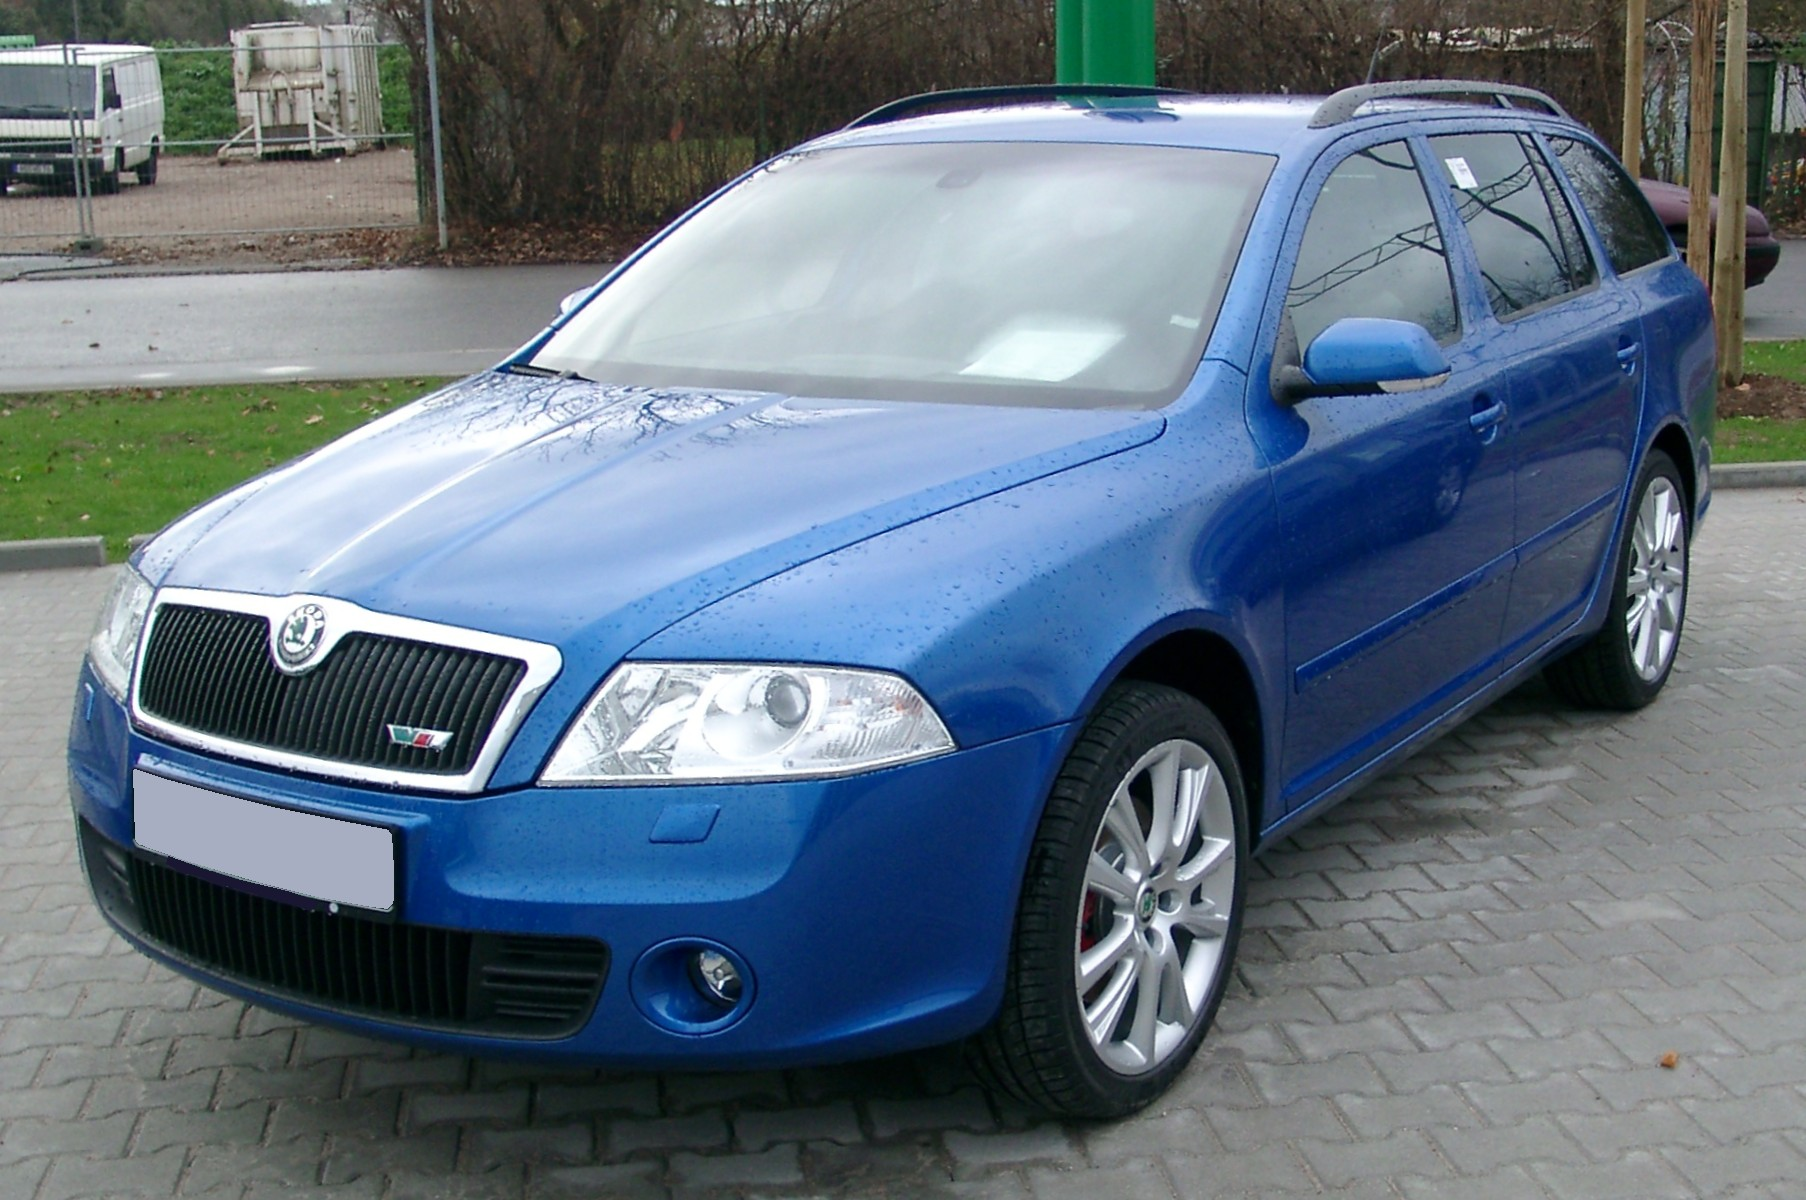 file skoda octavia kombi blue front wikimedia commons. Black Bedroom Furniture Sets. Home Design Ideas